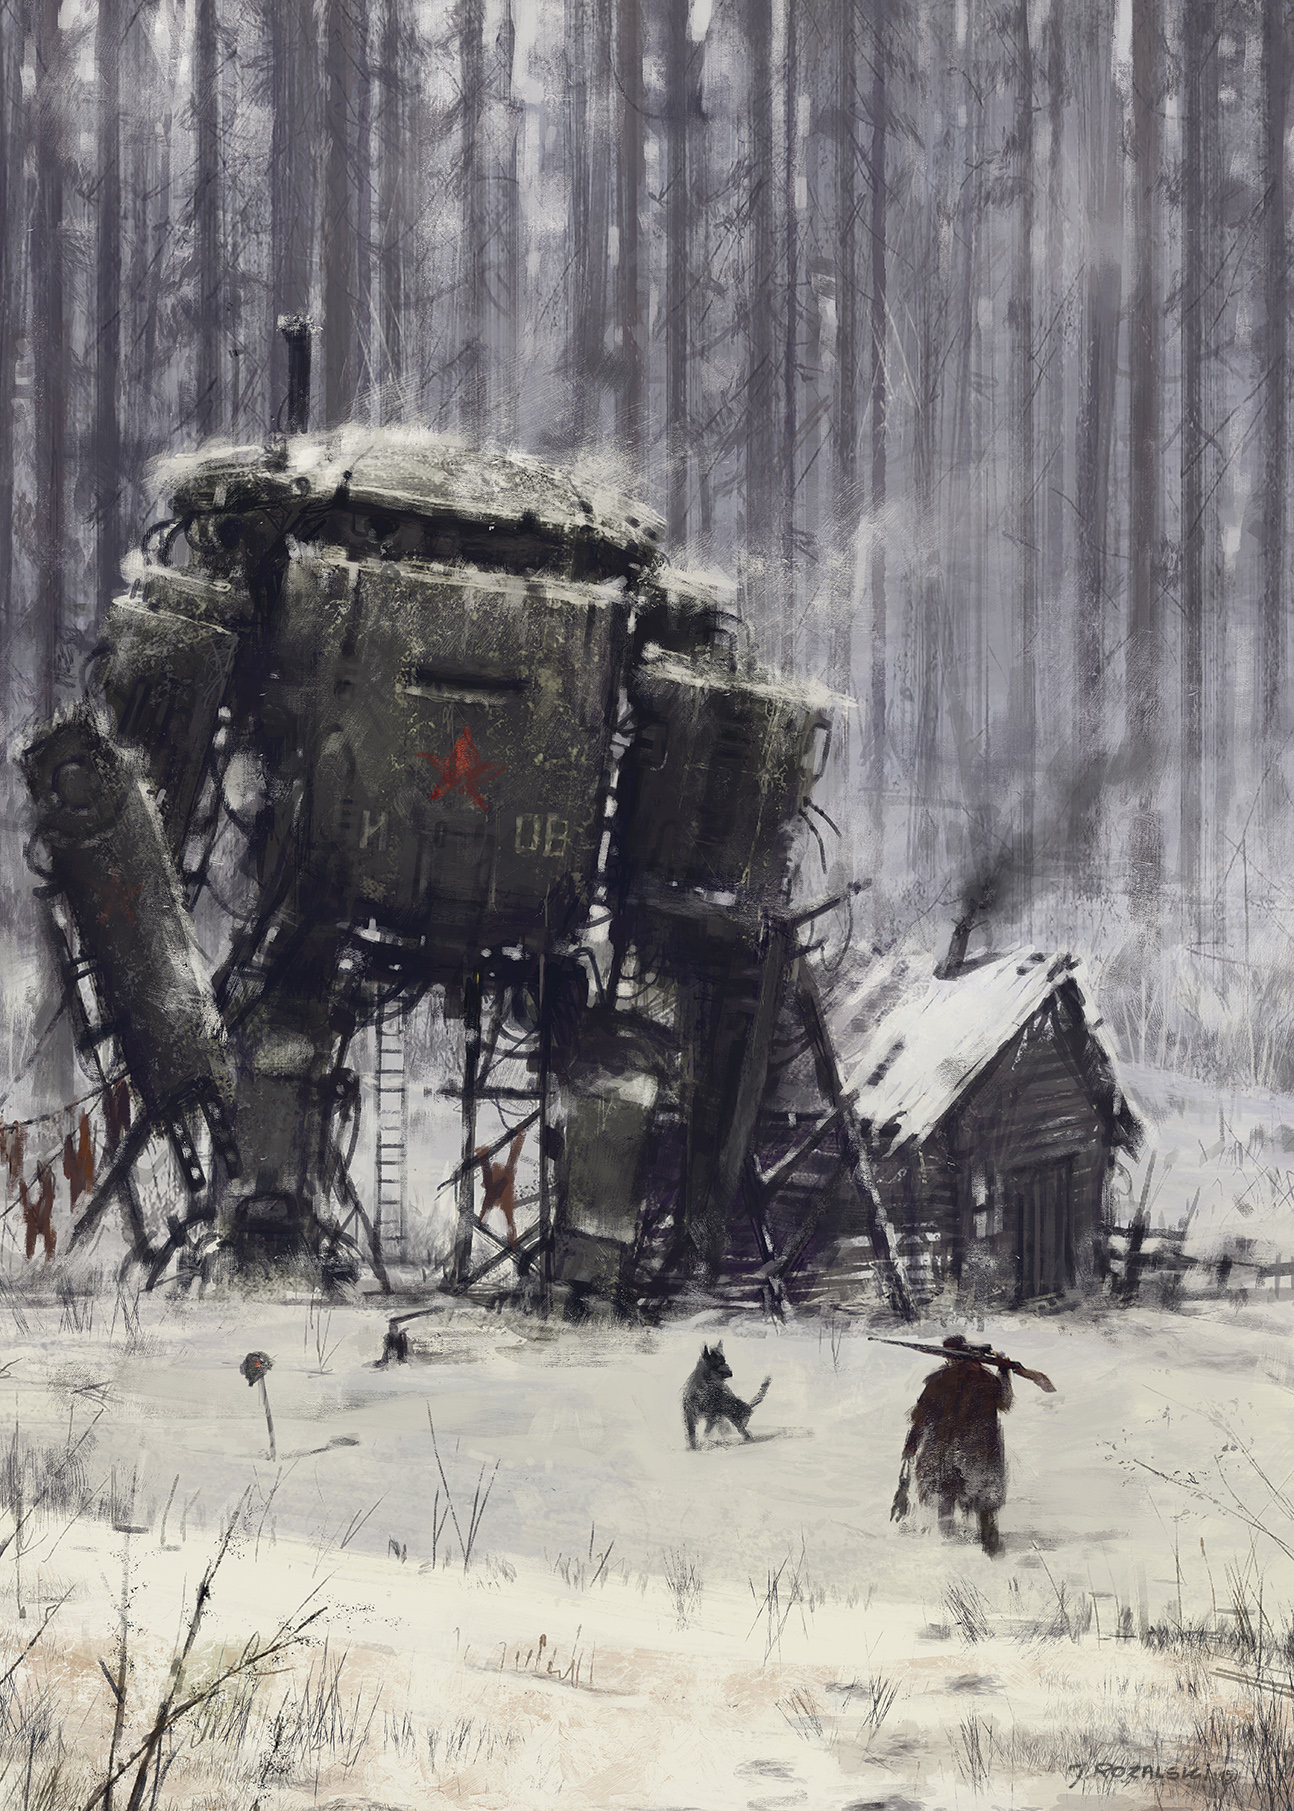 jakub-rozalski-1920-retired-veteran-70na